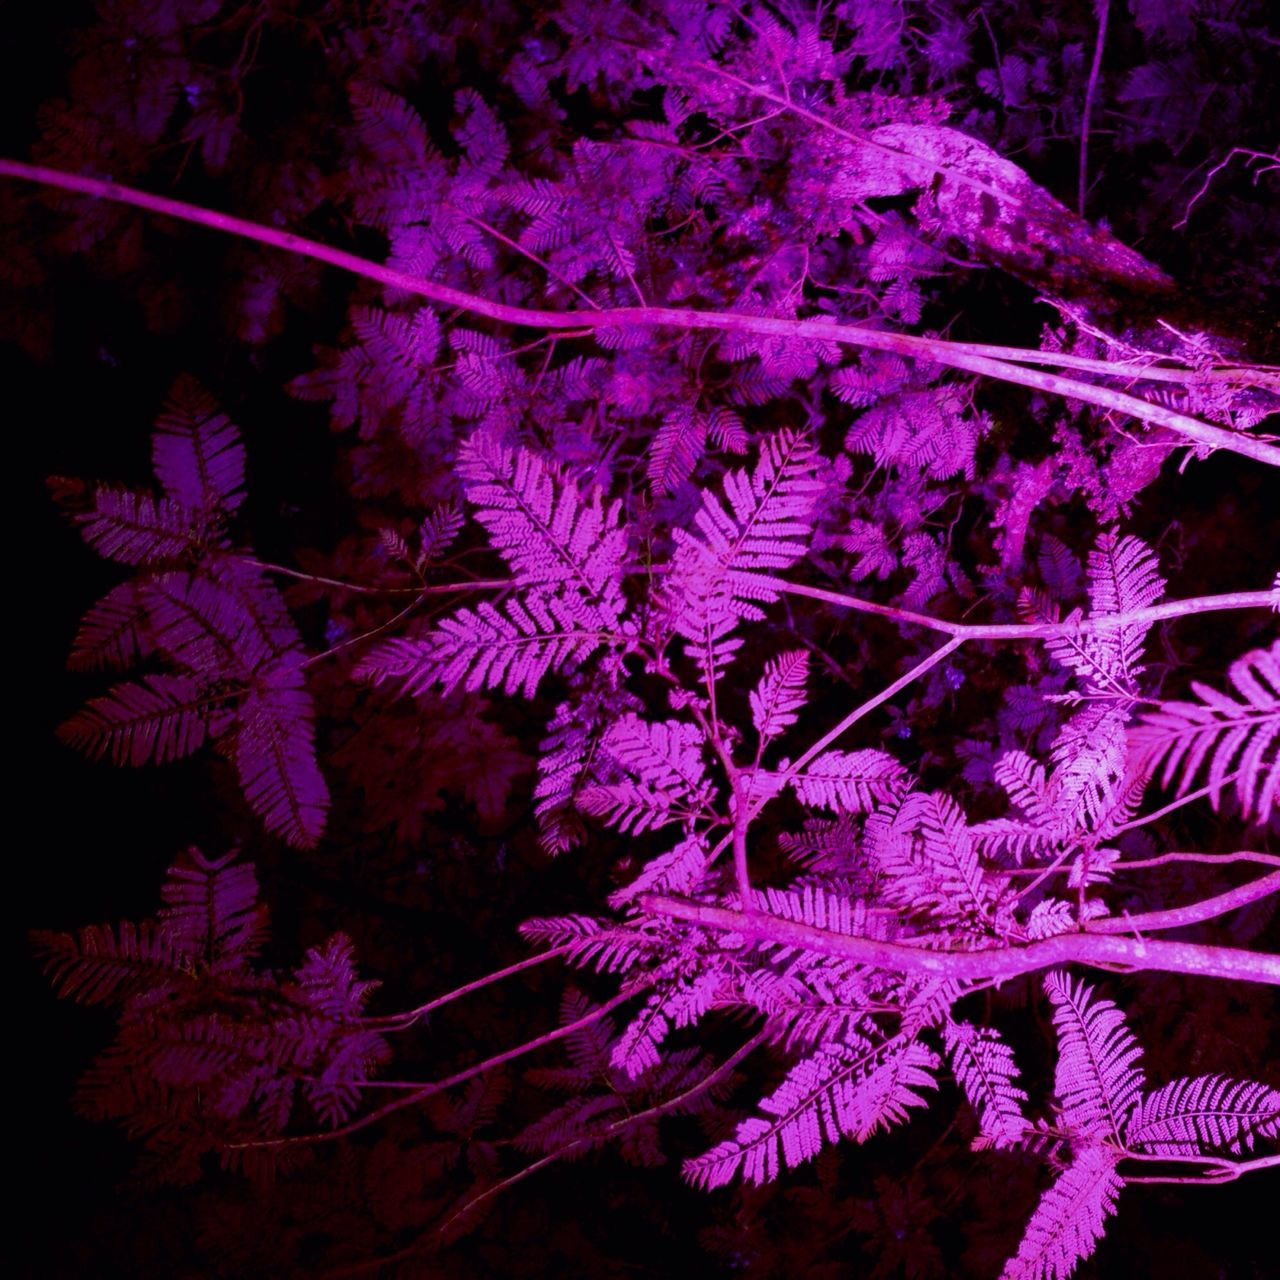 Purple Leaves On Branch At Night